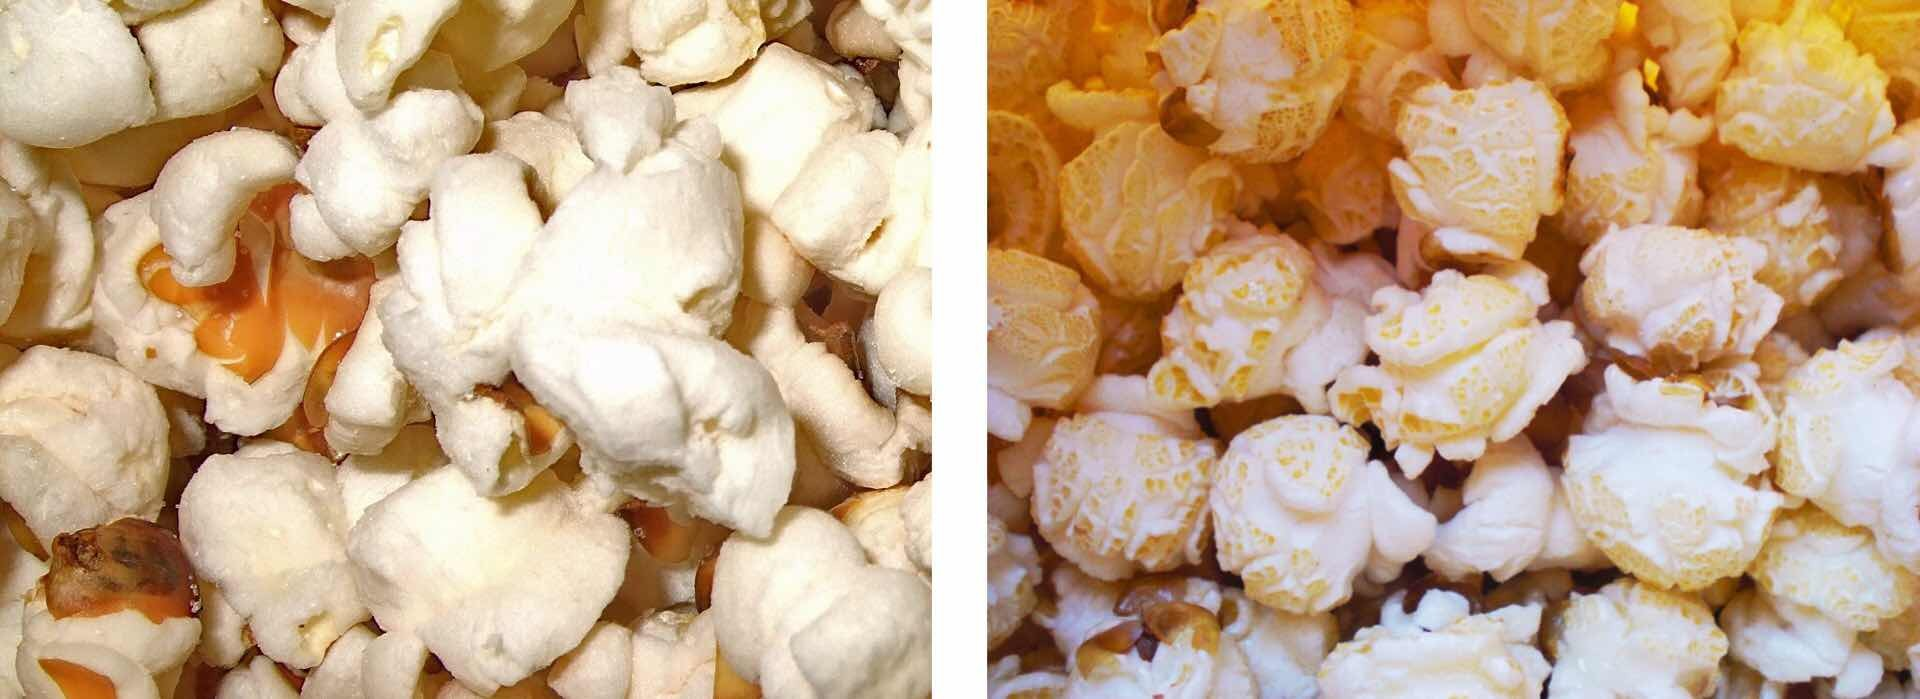 Left: Butterfly popcorn (photo by Joelle Nebbe-Mornod)Right: Mushroom popcorn (photo by Daniel Sotirhos)